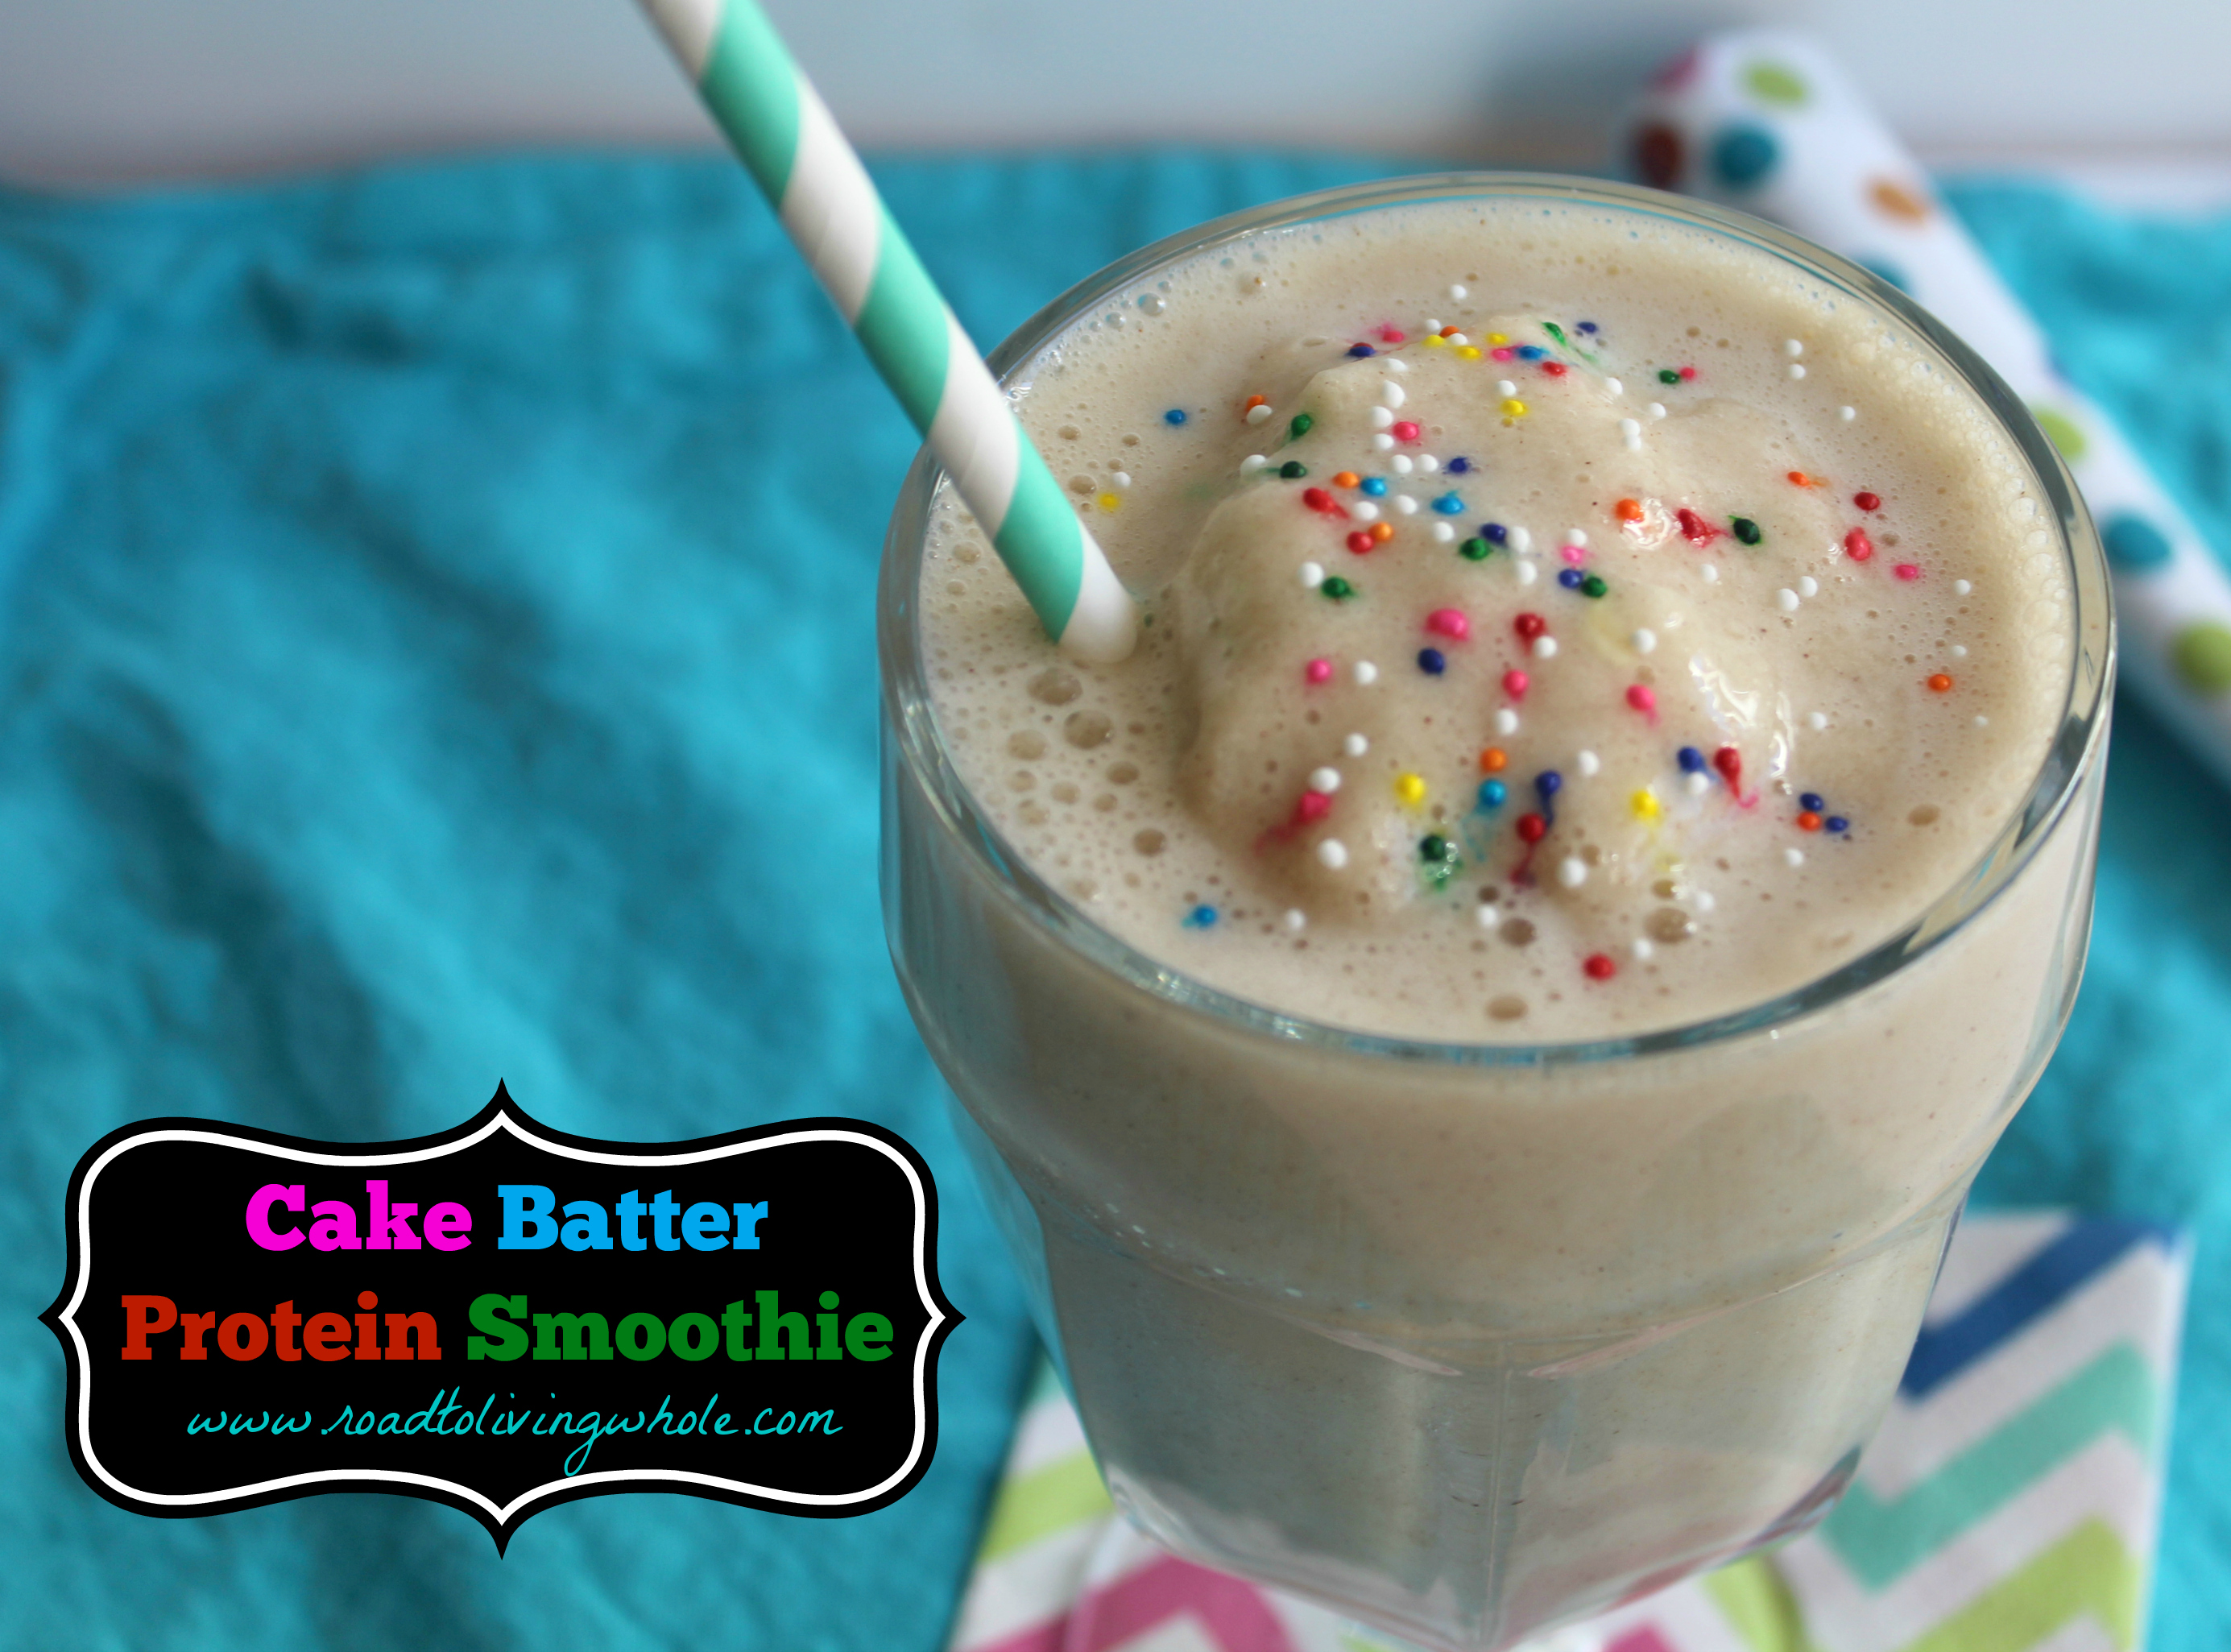 this cake batter protein smoothie recipe was given to me from a family ...